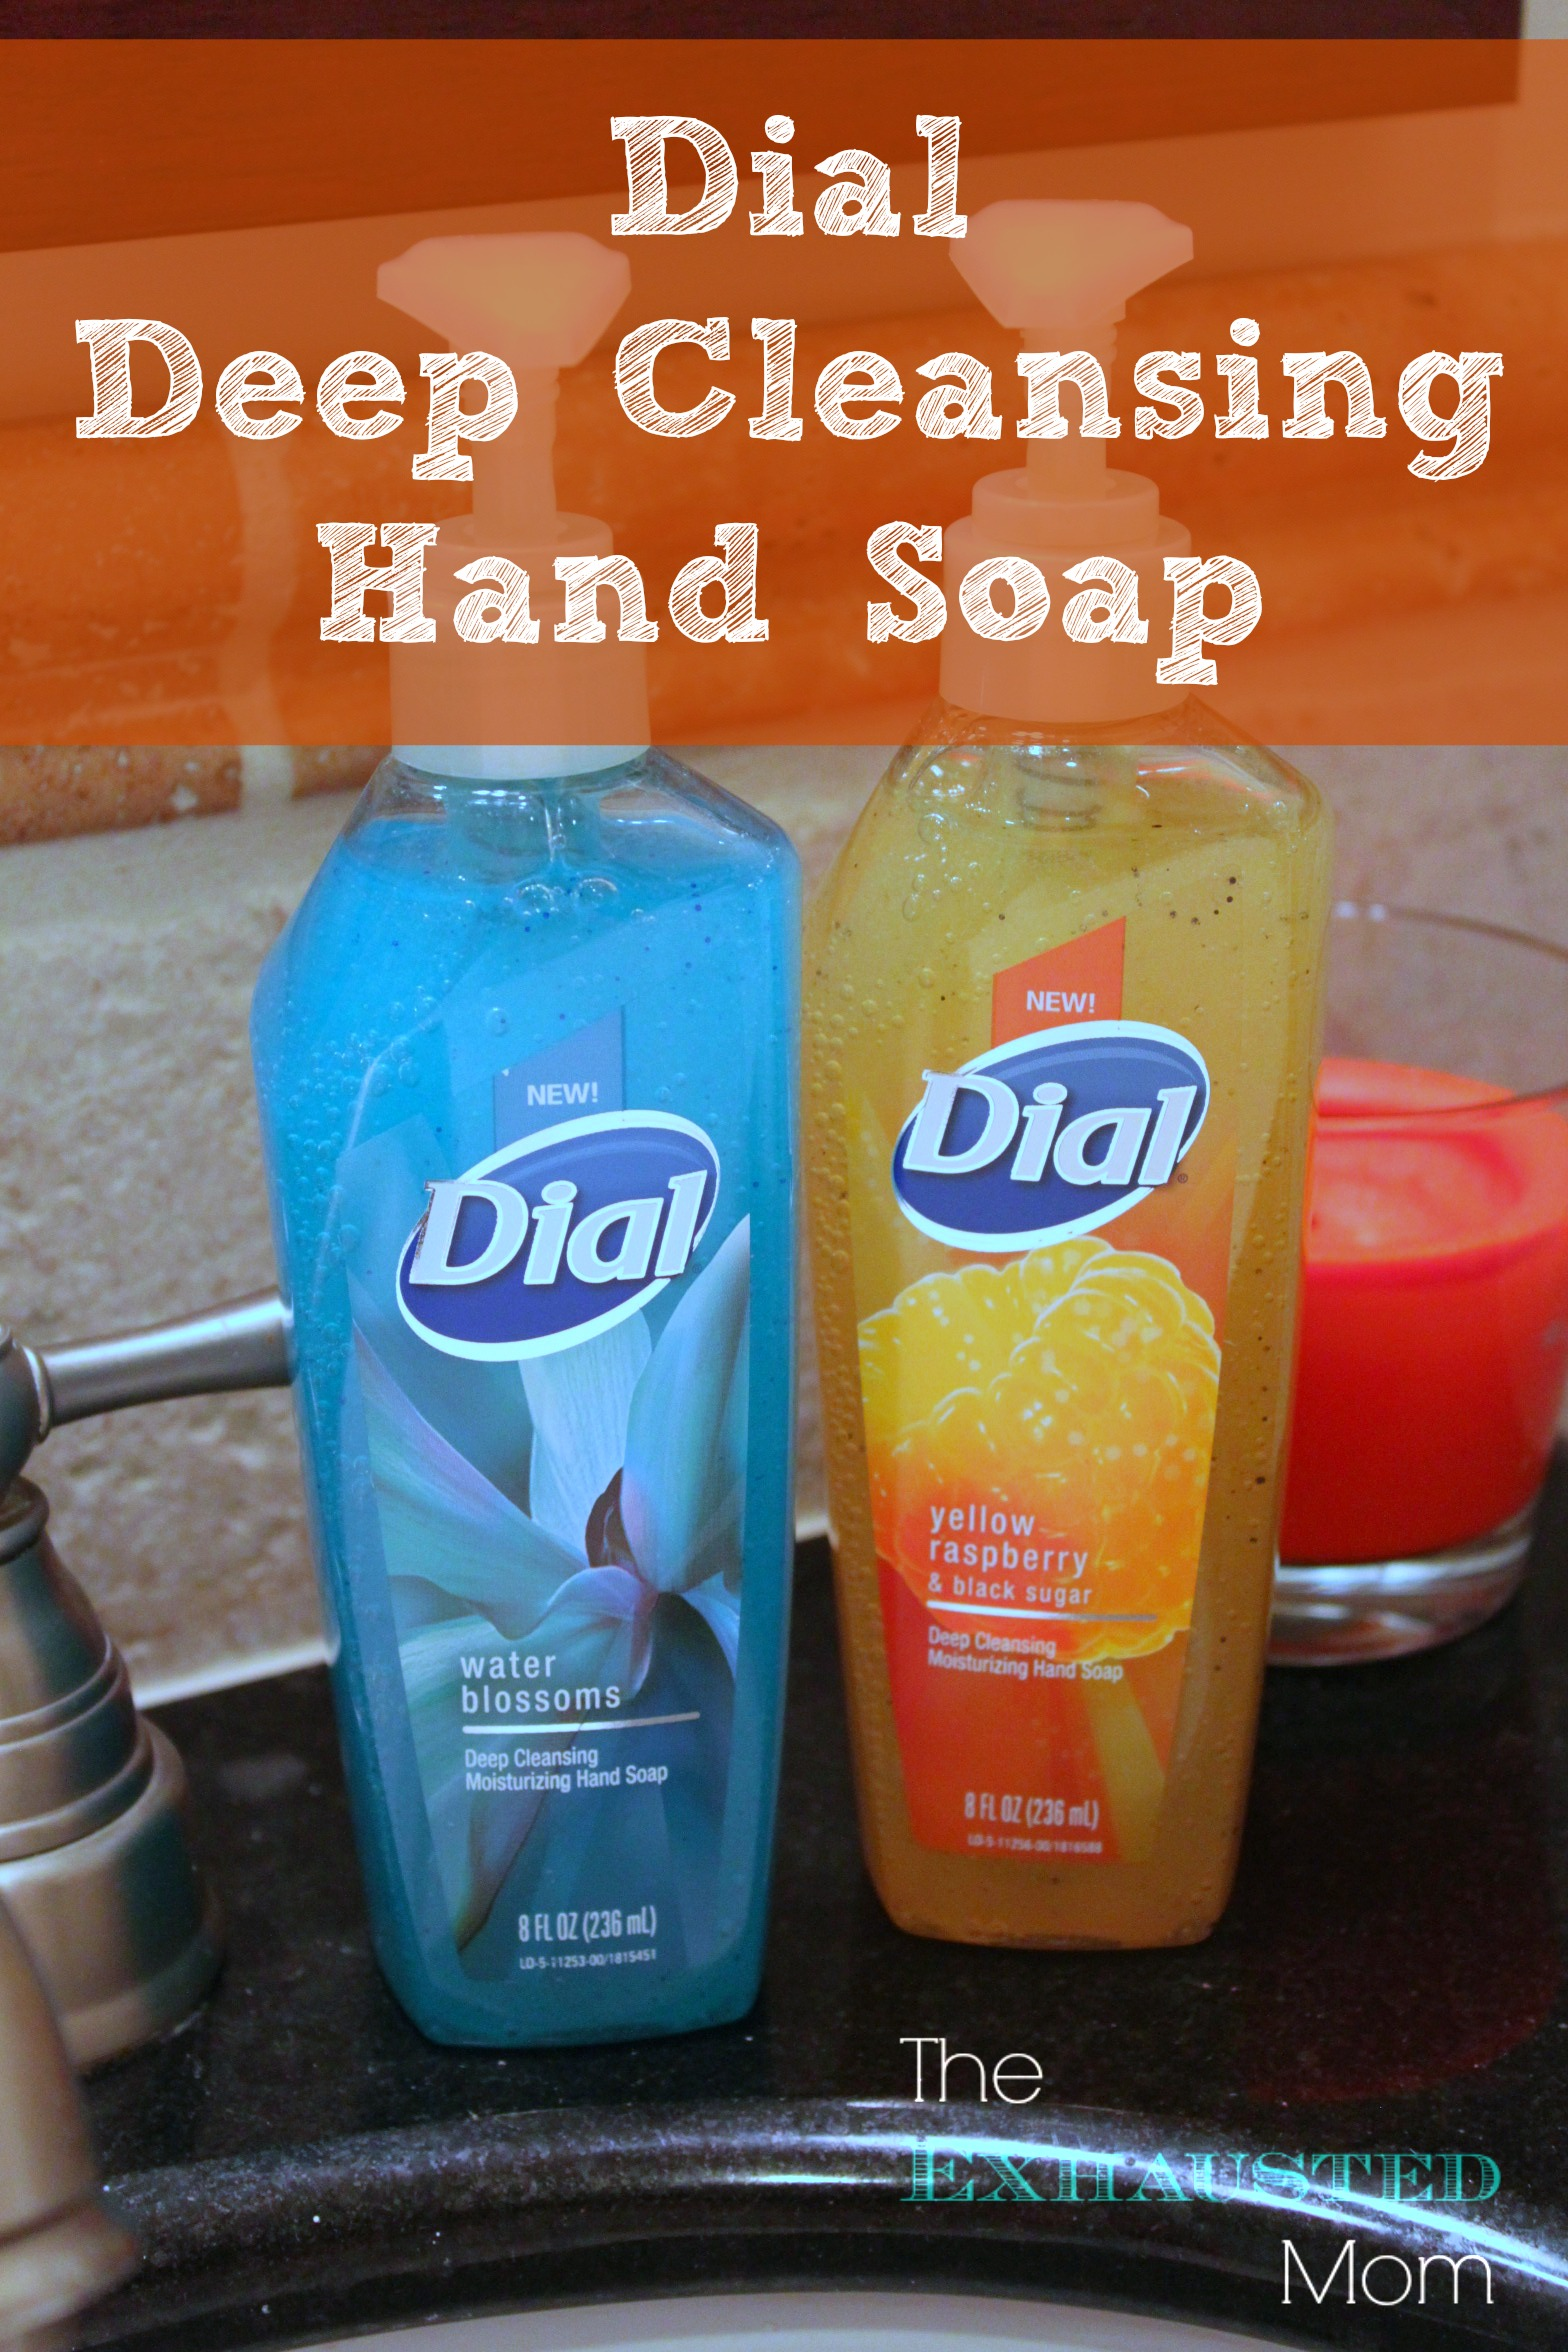 Clean Dirty Hands with Dial Deep Cleansing Hand Soap